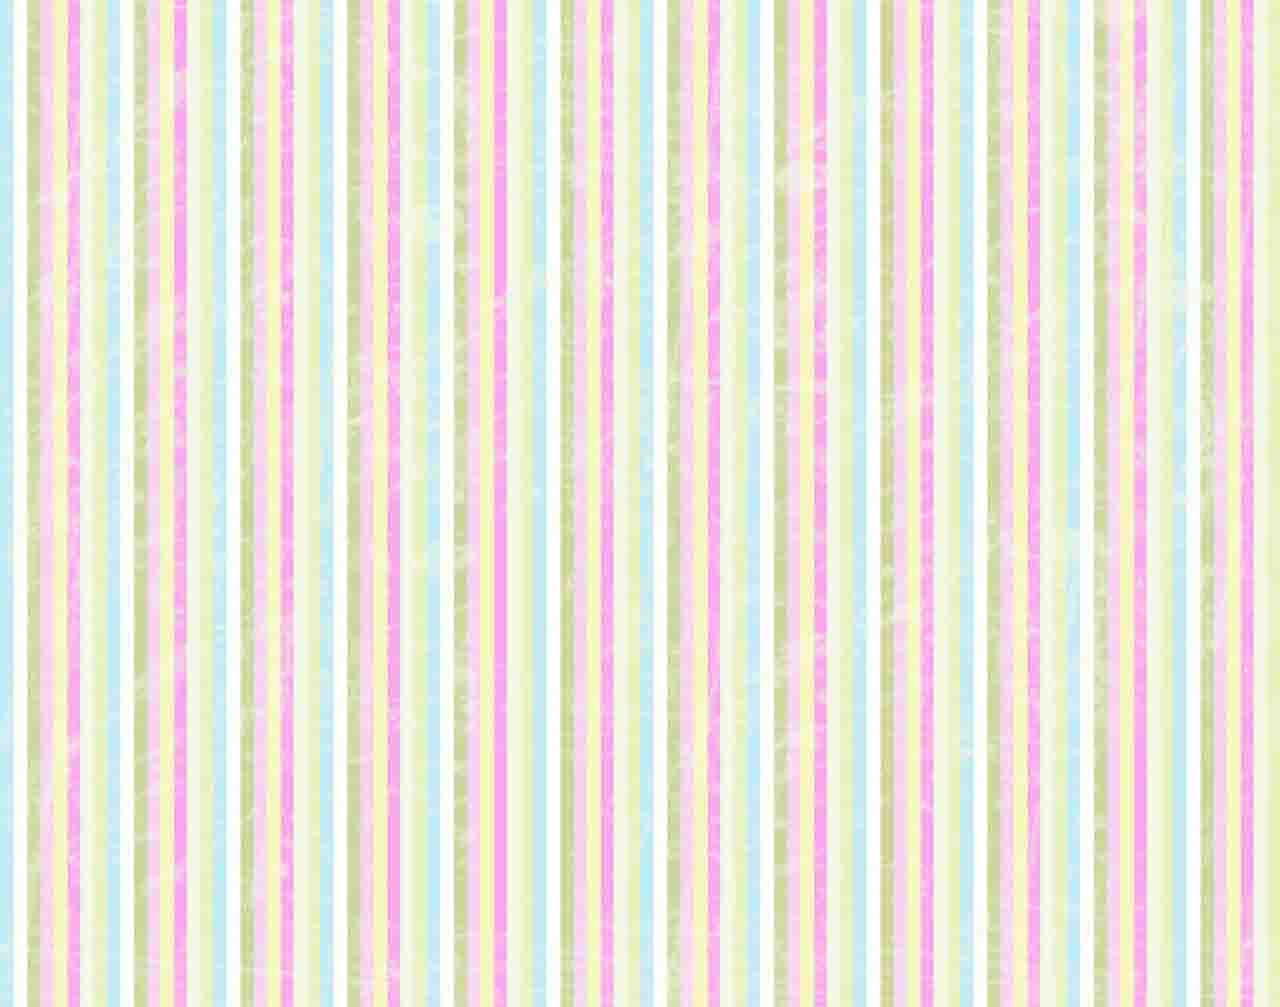 Easter Stripes Backgrounds